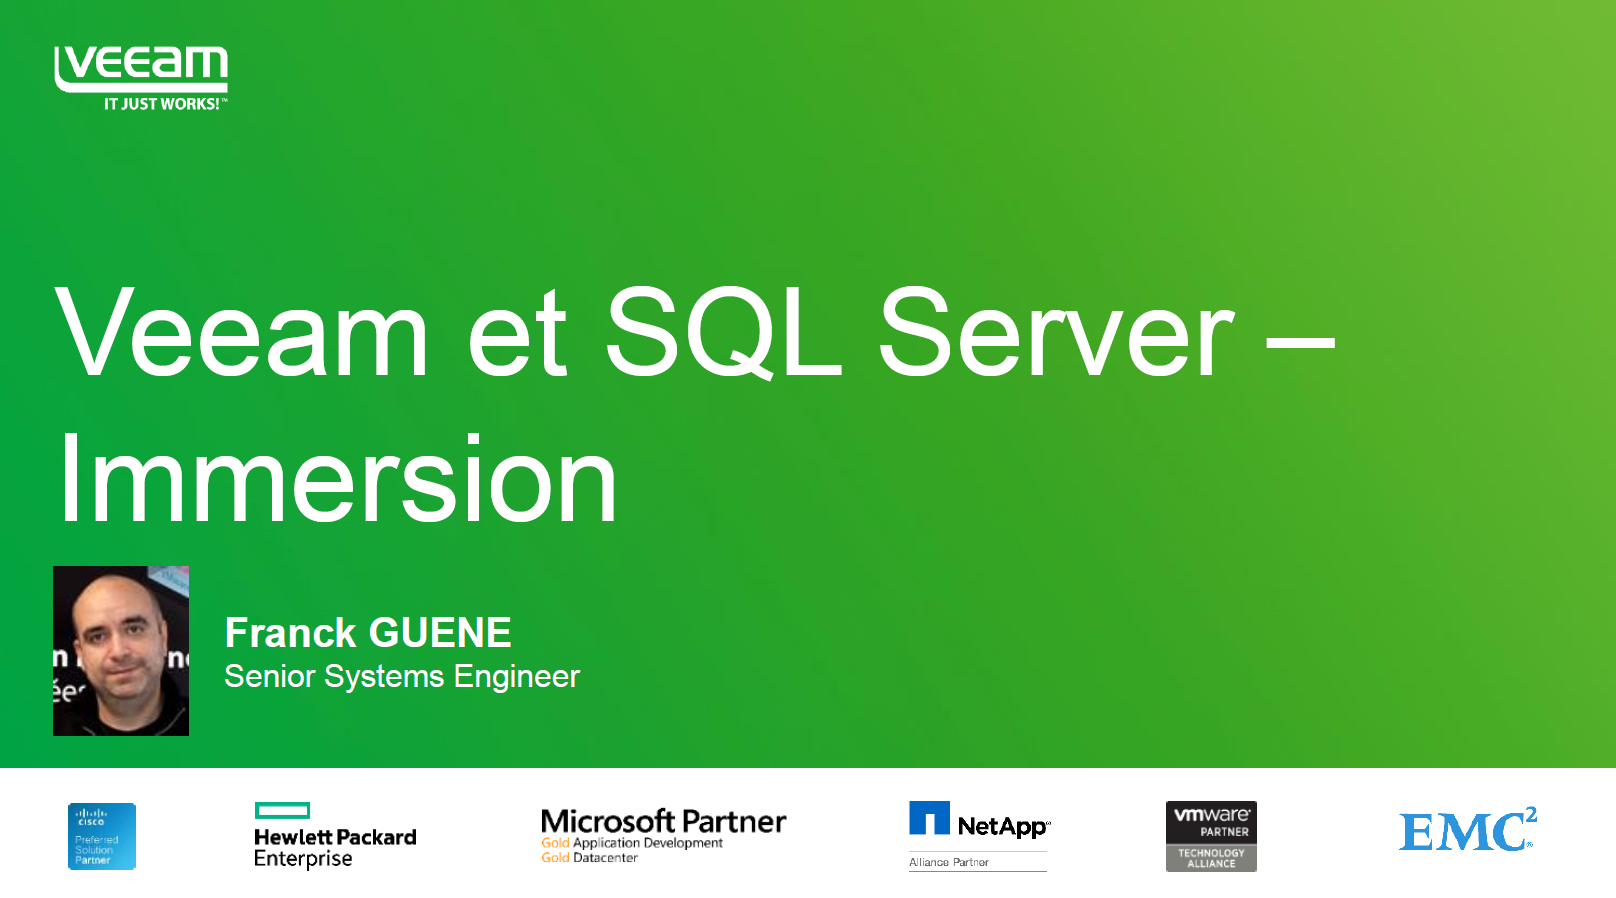 PARTIE 3 : Veeam et Microsoft SQL Server – immersion